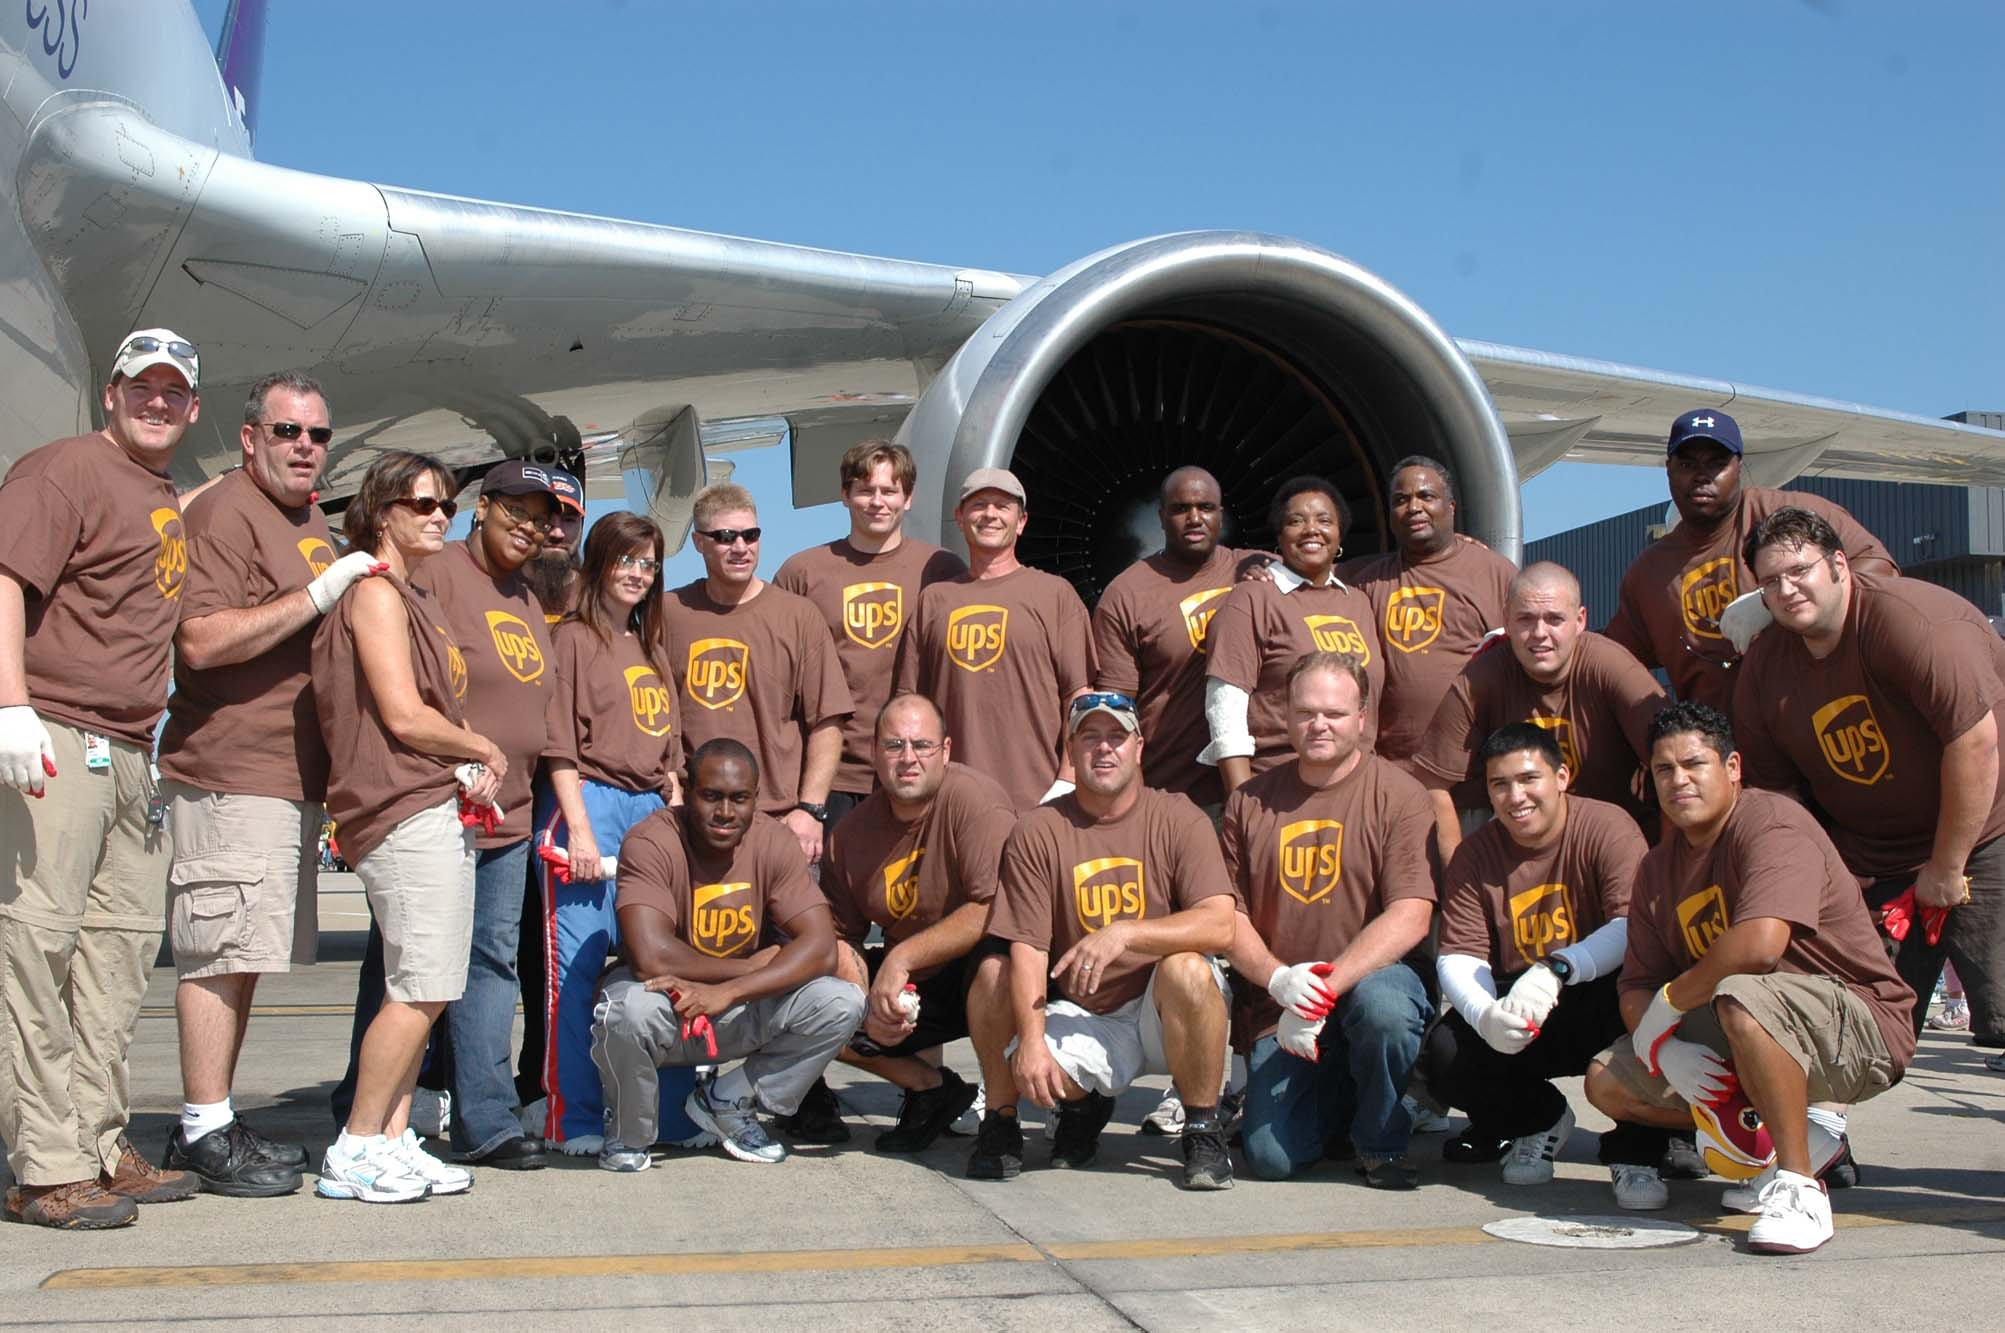 Custom T-Shirts for Ups Plane Pull For Charity - Shirt Design Ideas